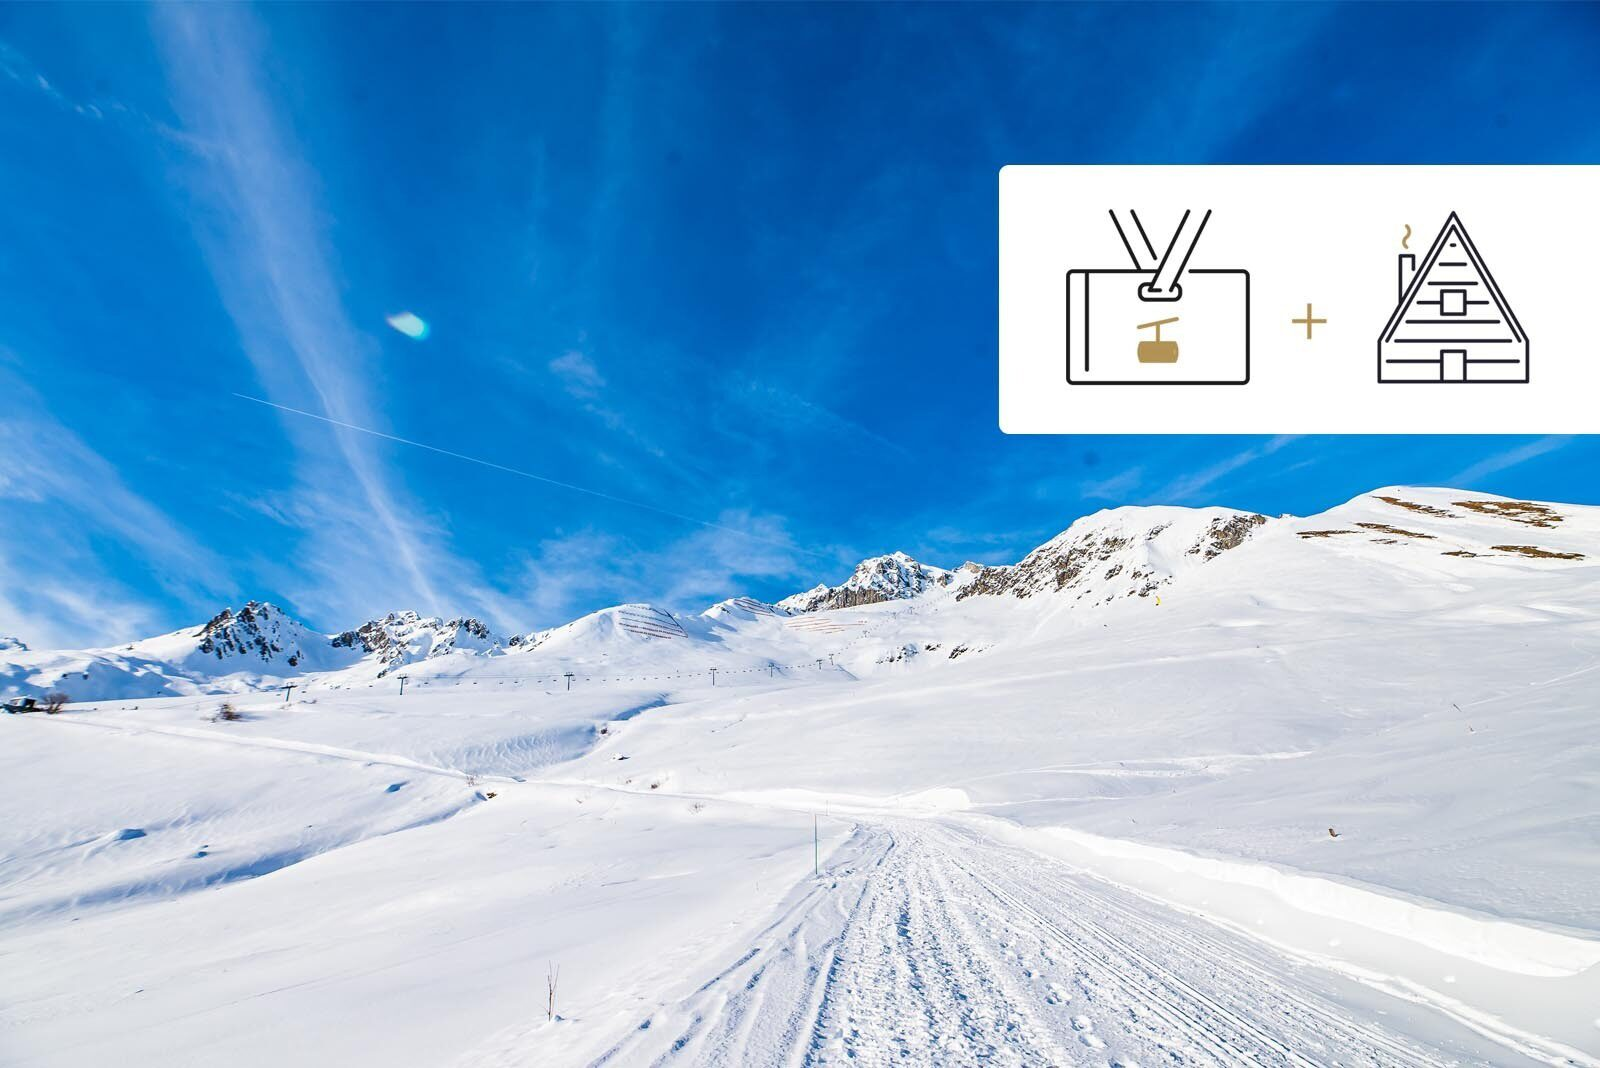 Ski passes 6 days off-season + early booking discount!